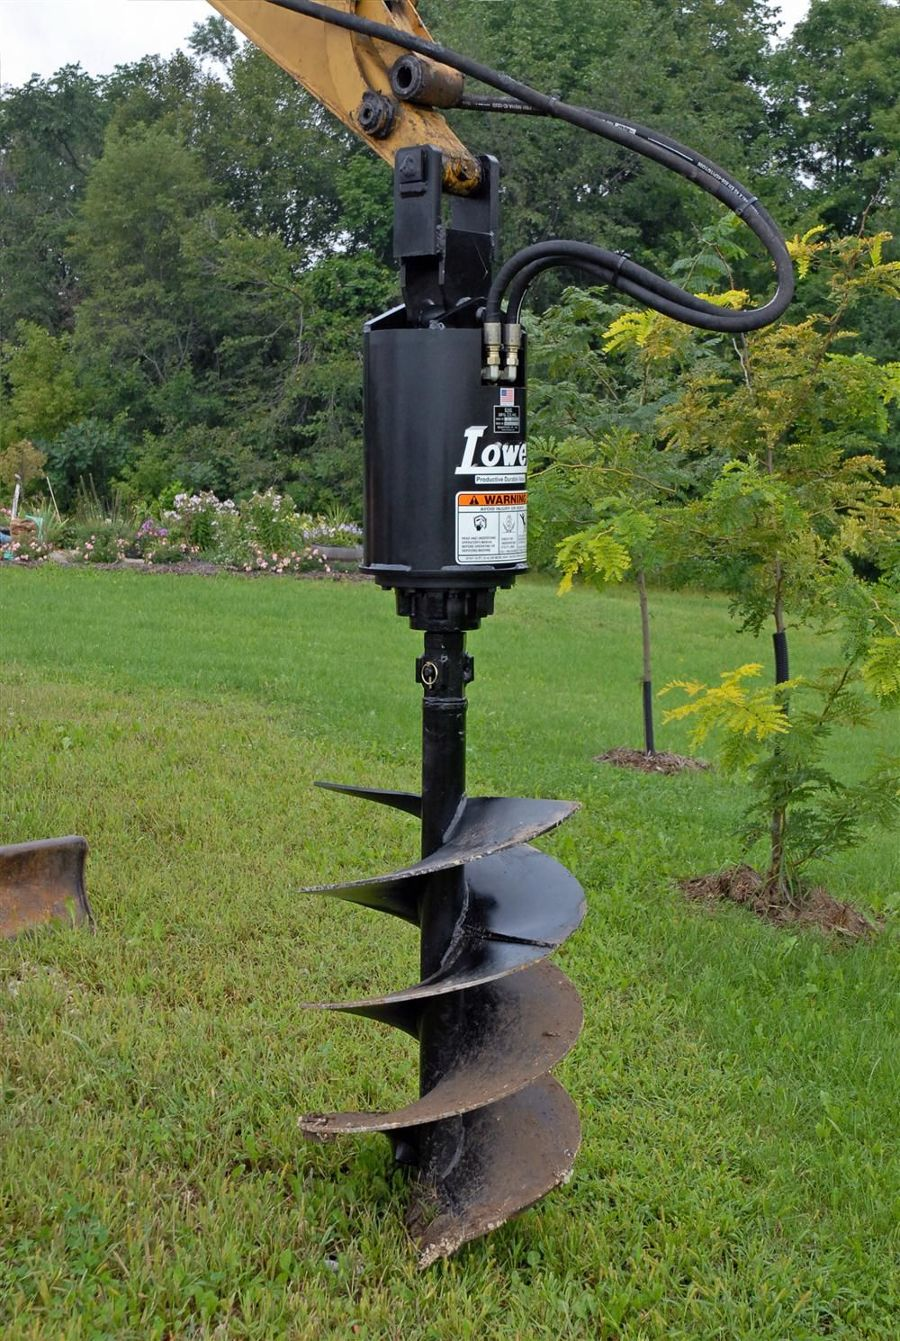 Lowe offers nine different models of auger drives to optimize the performance of tractor loader backhoes.